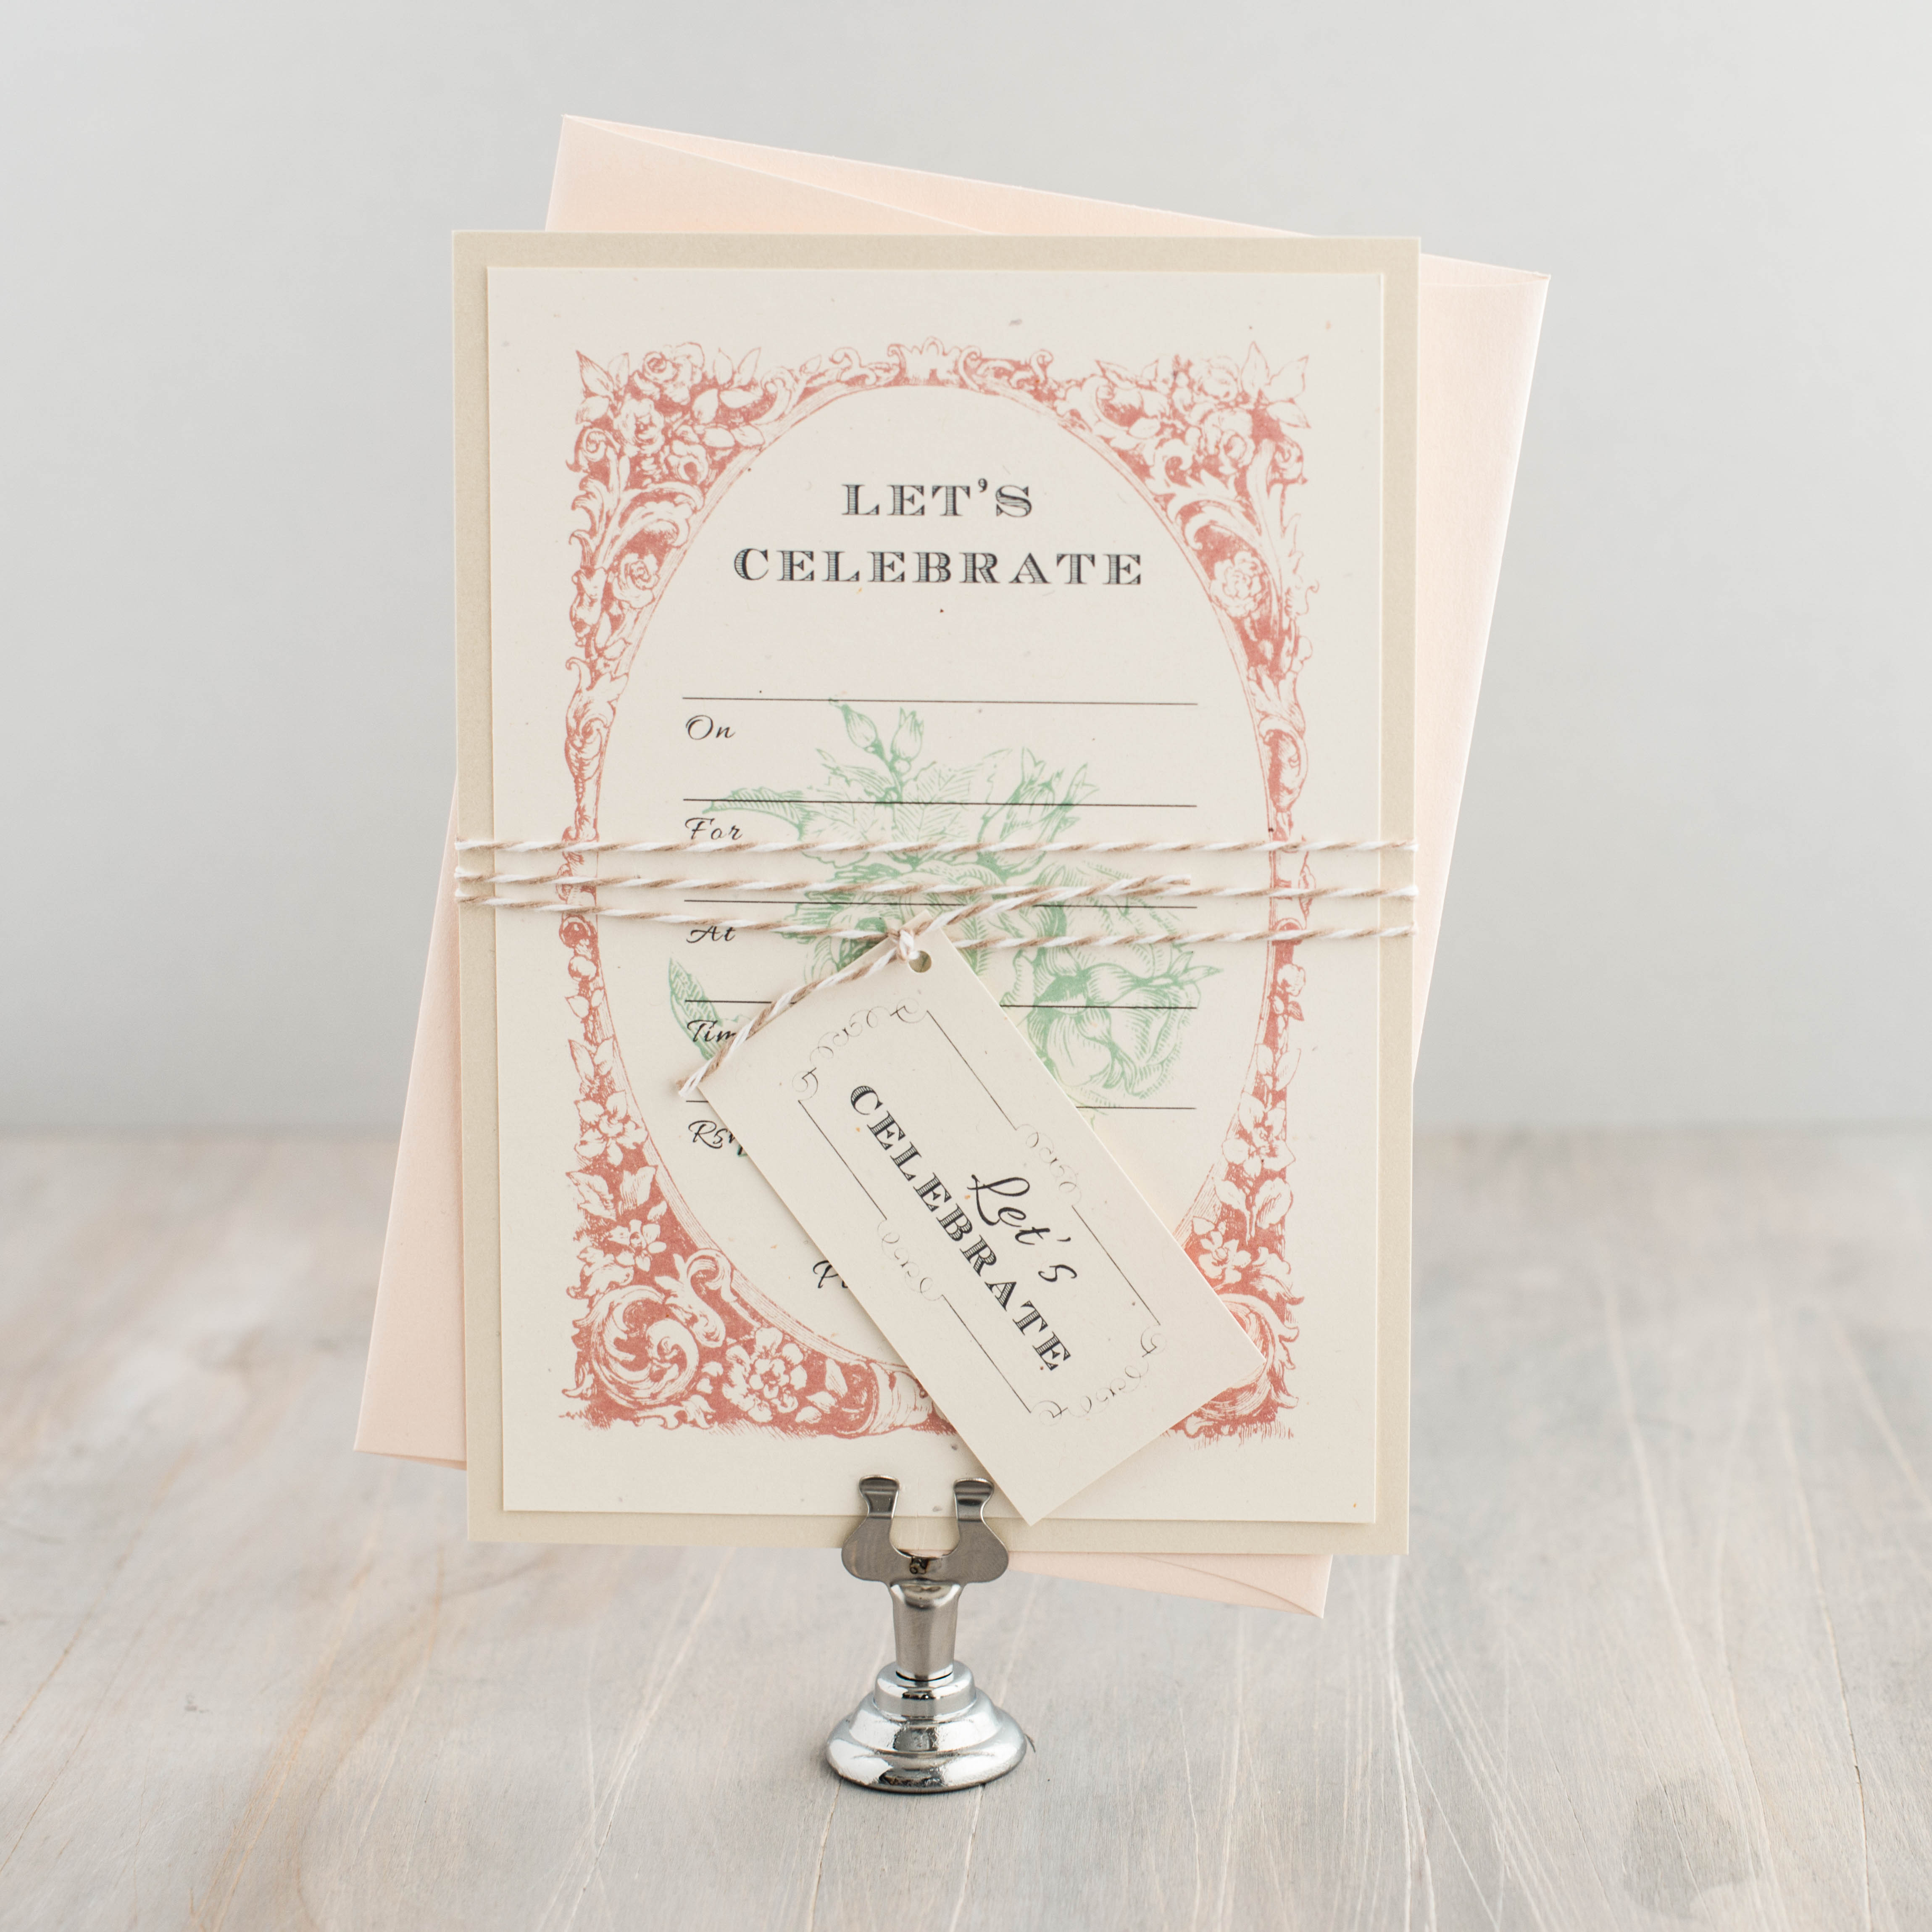 Blank Wedding Invitations: Vintage Lace Fill In The Blank Wedding Invitations